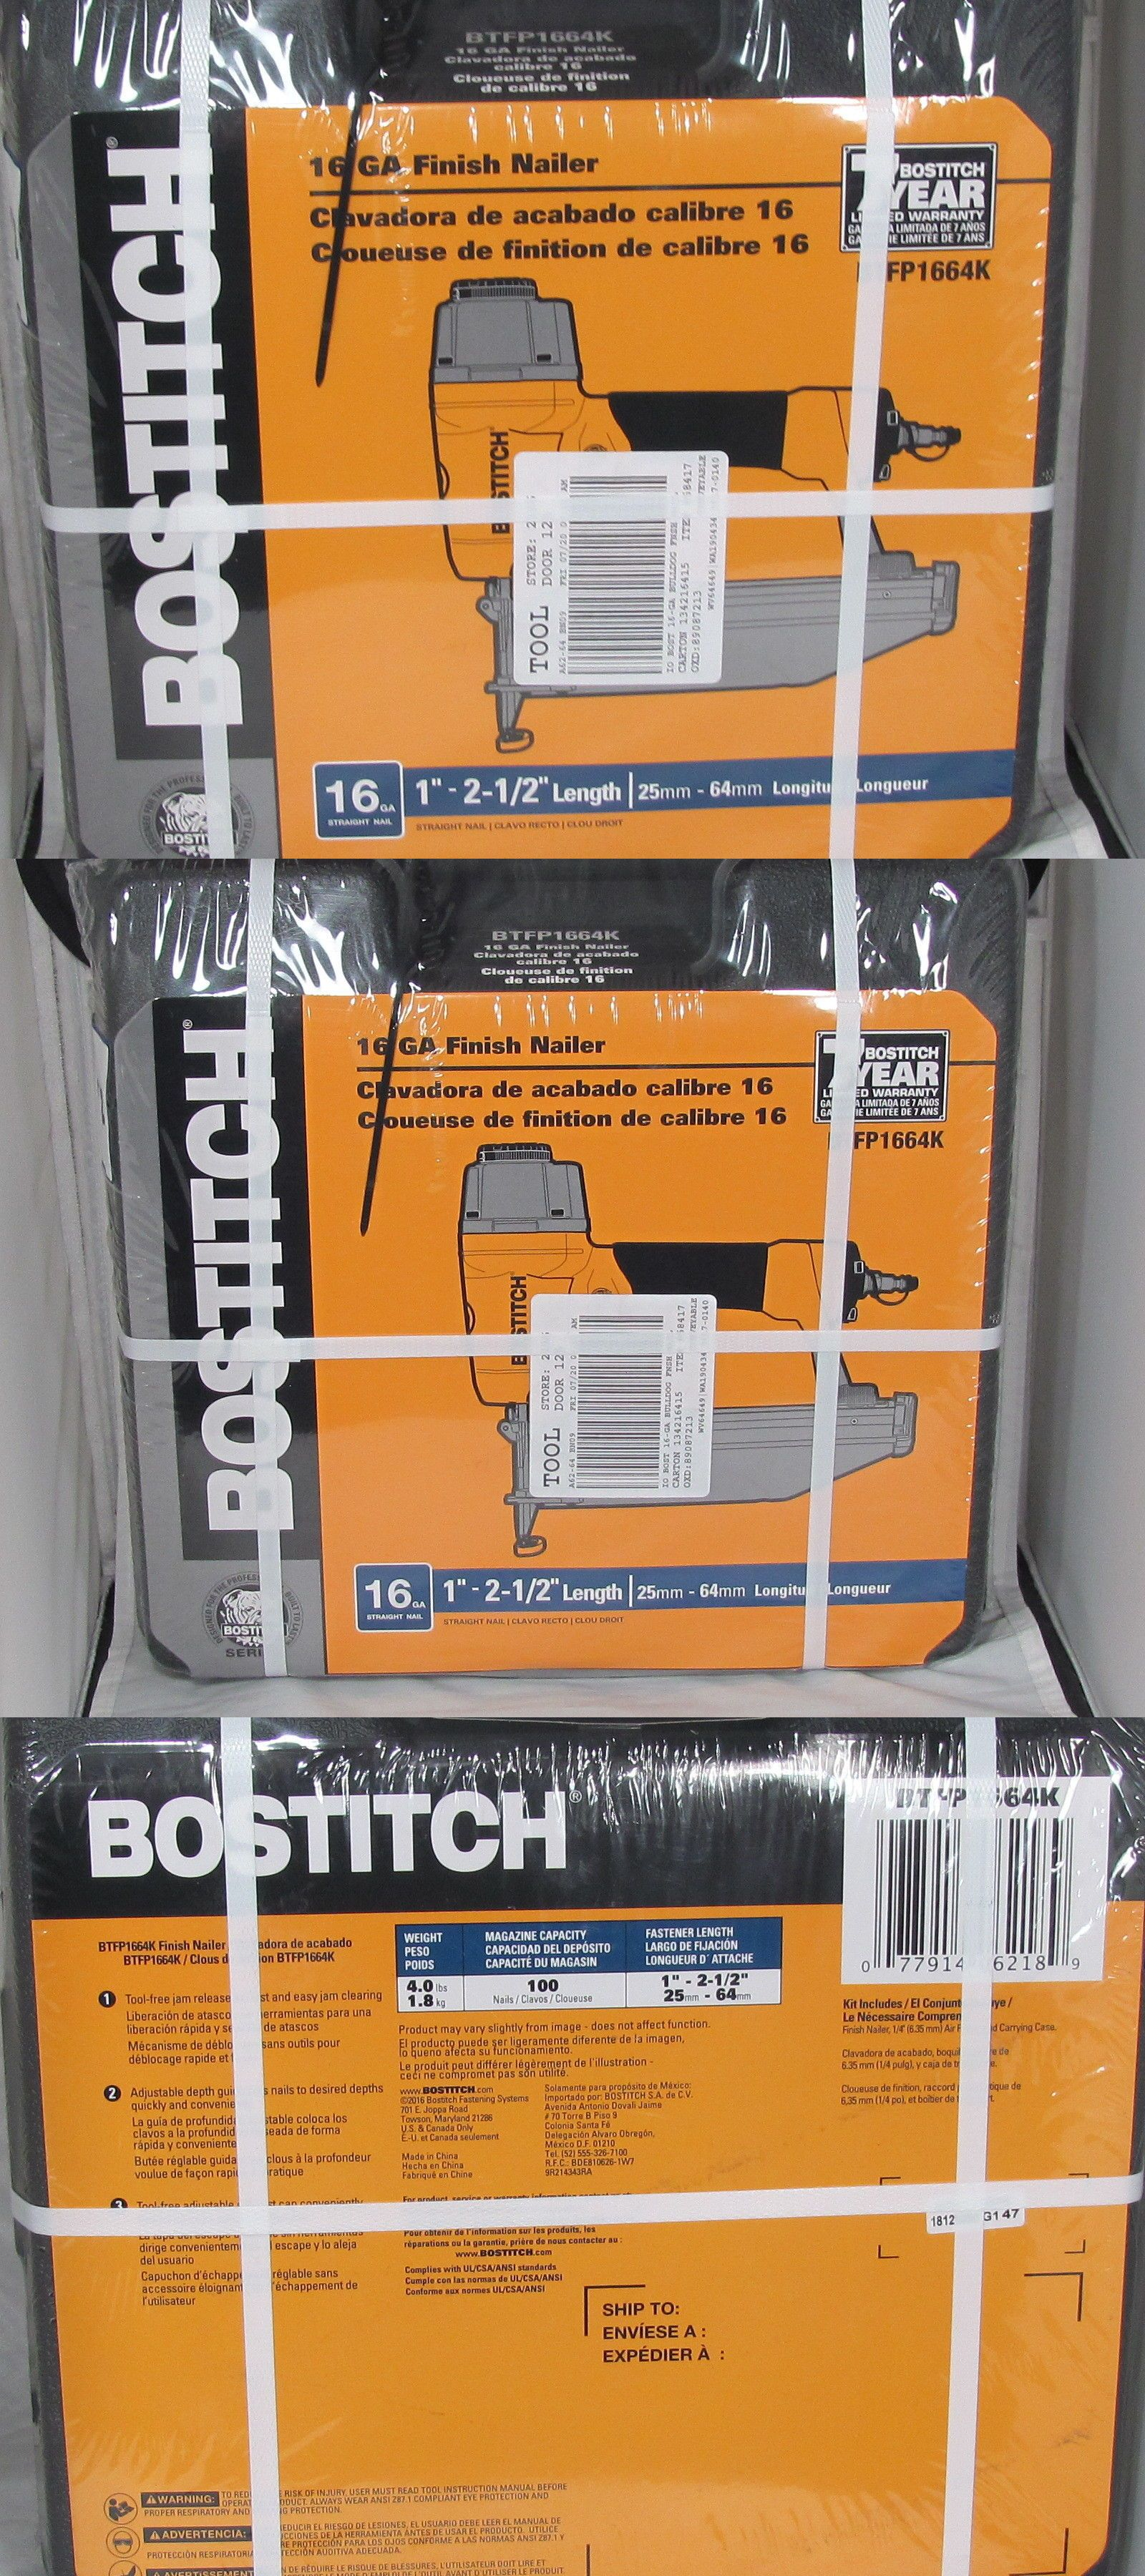 Air Tools 85759 Bostitch 1 2 1 2 Finish Nailer 16 Gauge Model Btfp1664k Brand New Buy It Now Only 68 95 On Ebay Tools Finish Nailer Nailer Air Tools